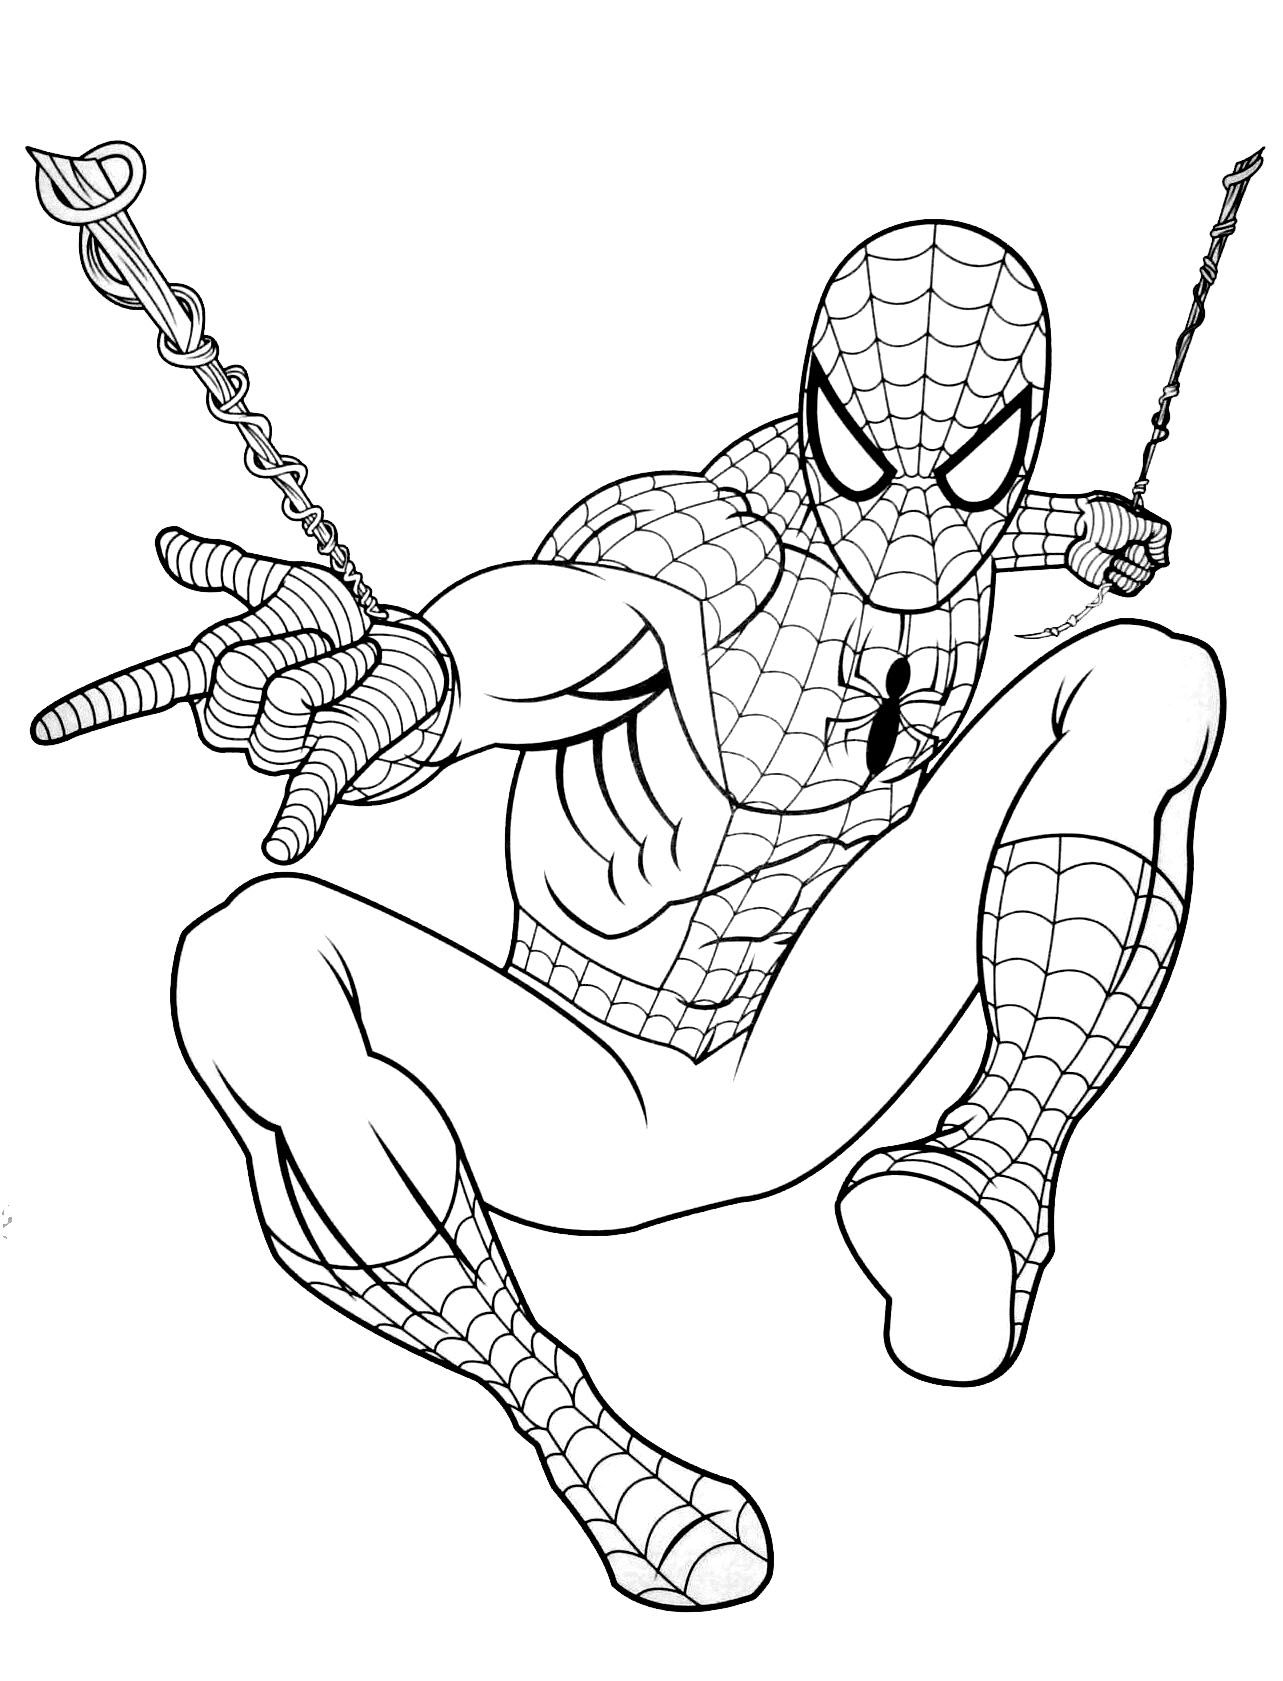 Unique Image De Super Hero A Colorier